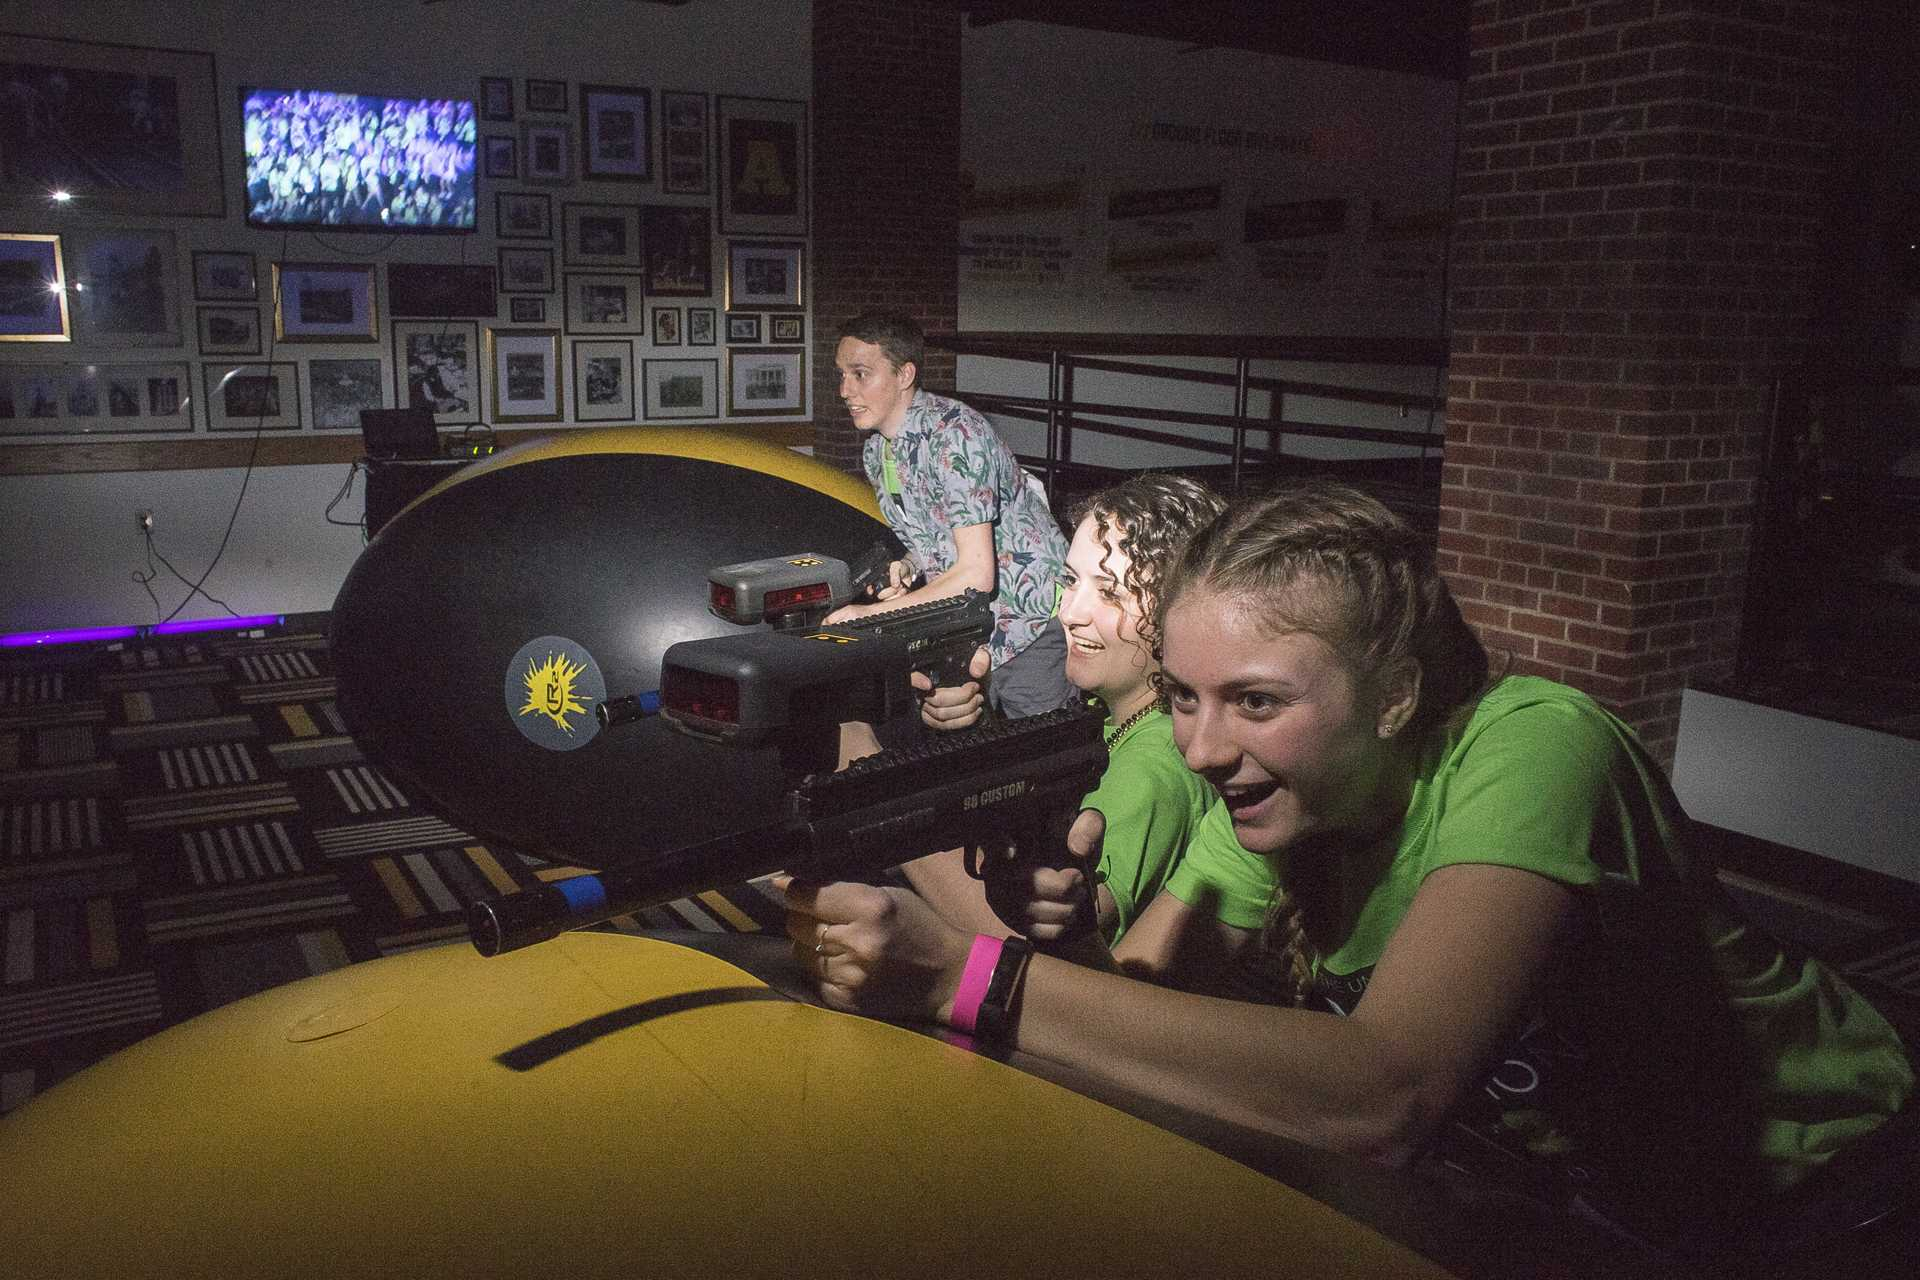 Participants play laser tag during Dance Marathon in the Iowa Memorial Union on Friday, Feb. 2, 2018. (James Year/The Daily Iowan)